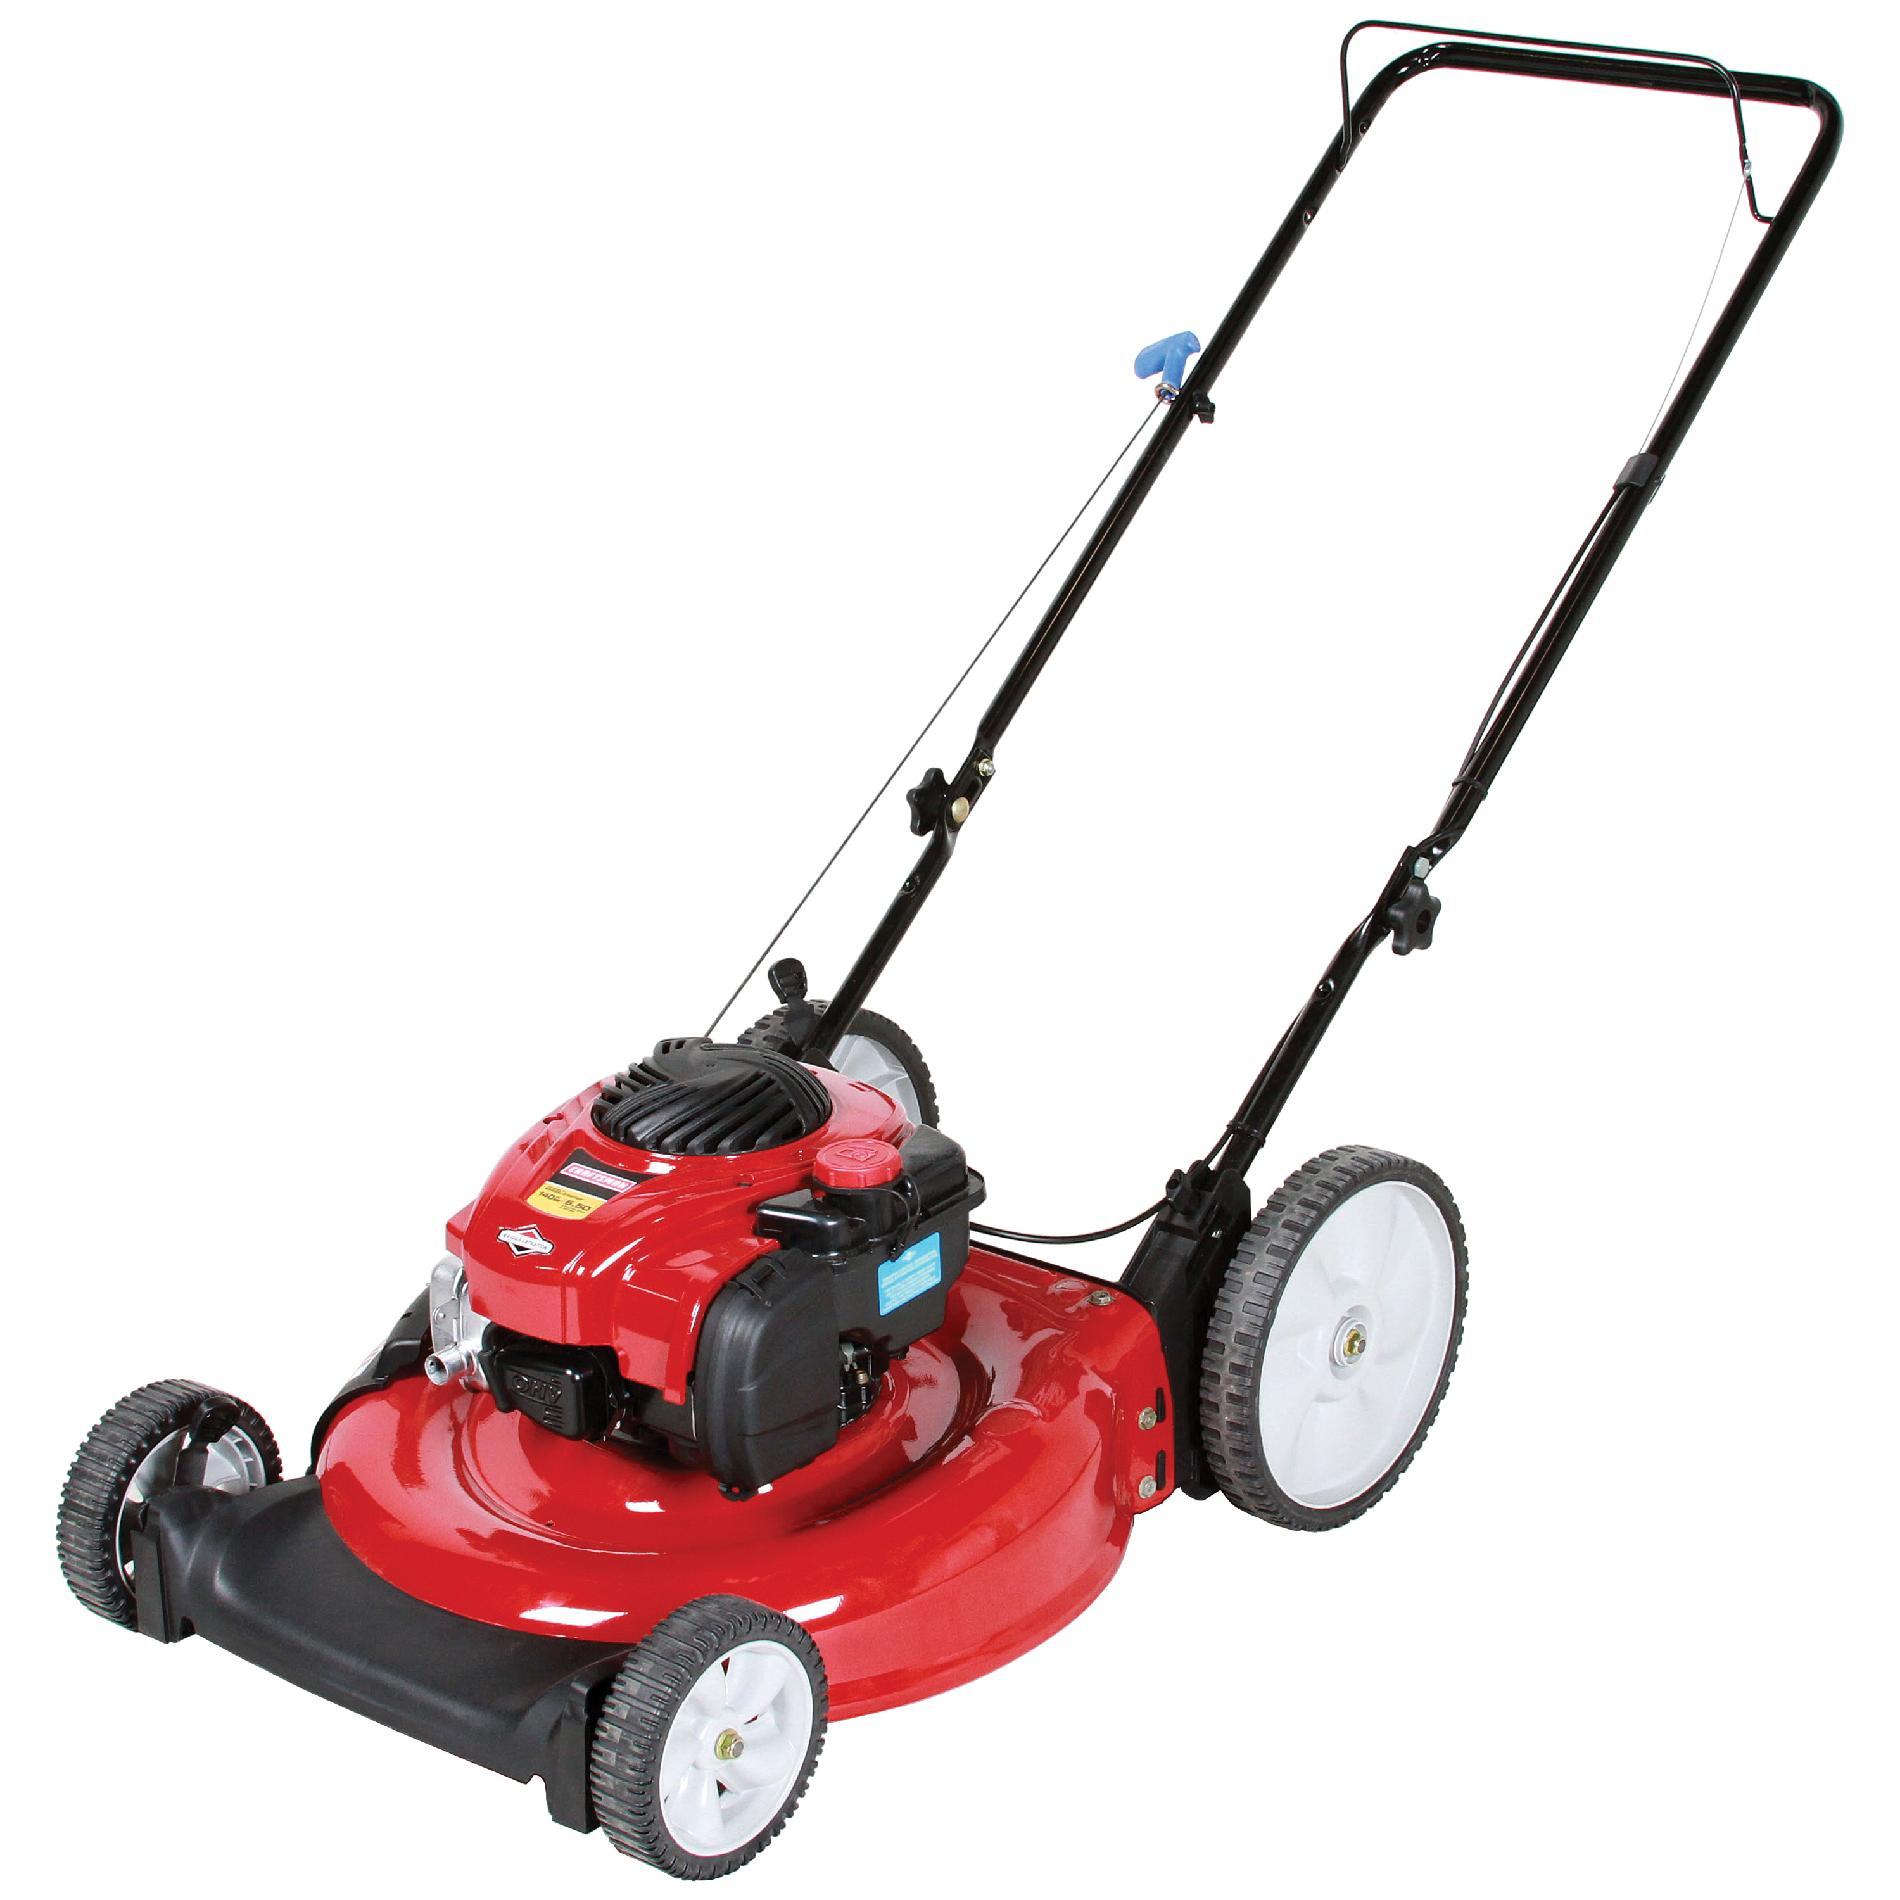 Craftsman 140cc* Briggs & Stratton Engine, High Wheel Side Discharge Push Mower 50 States